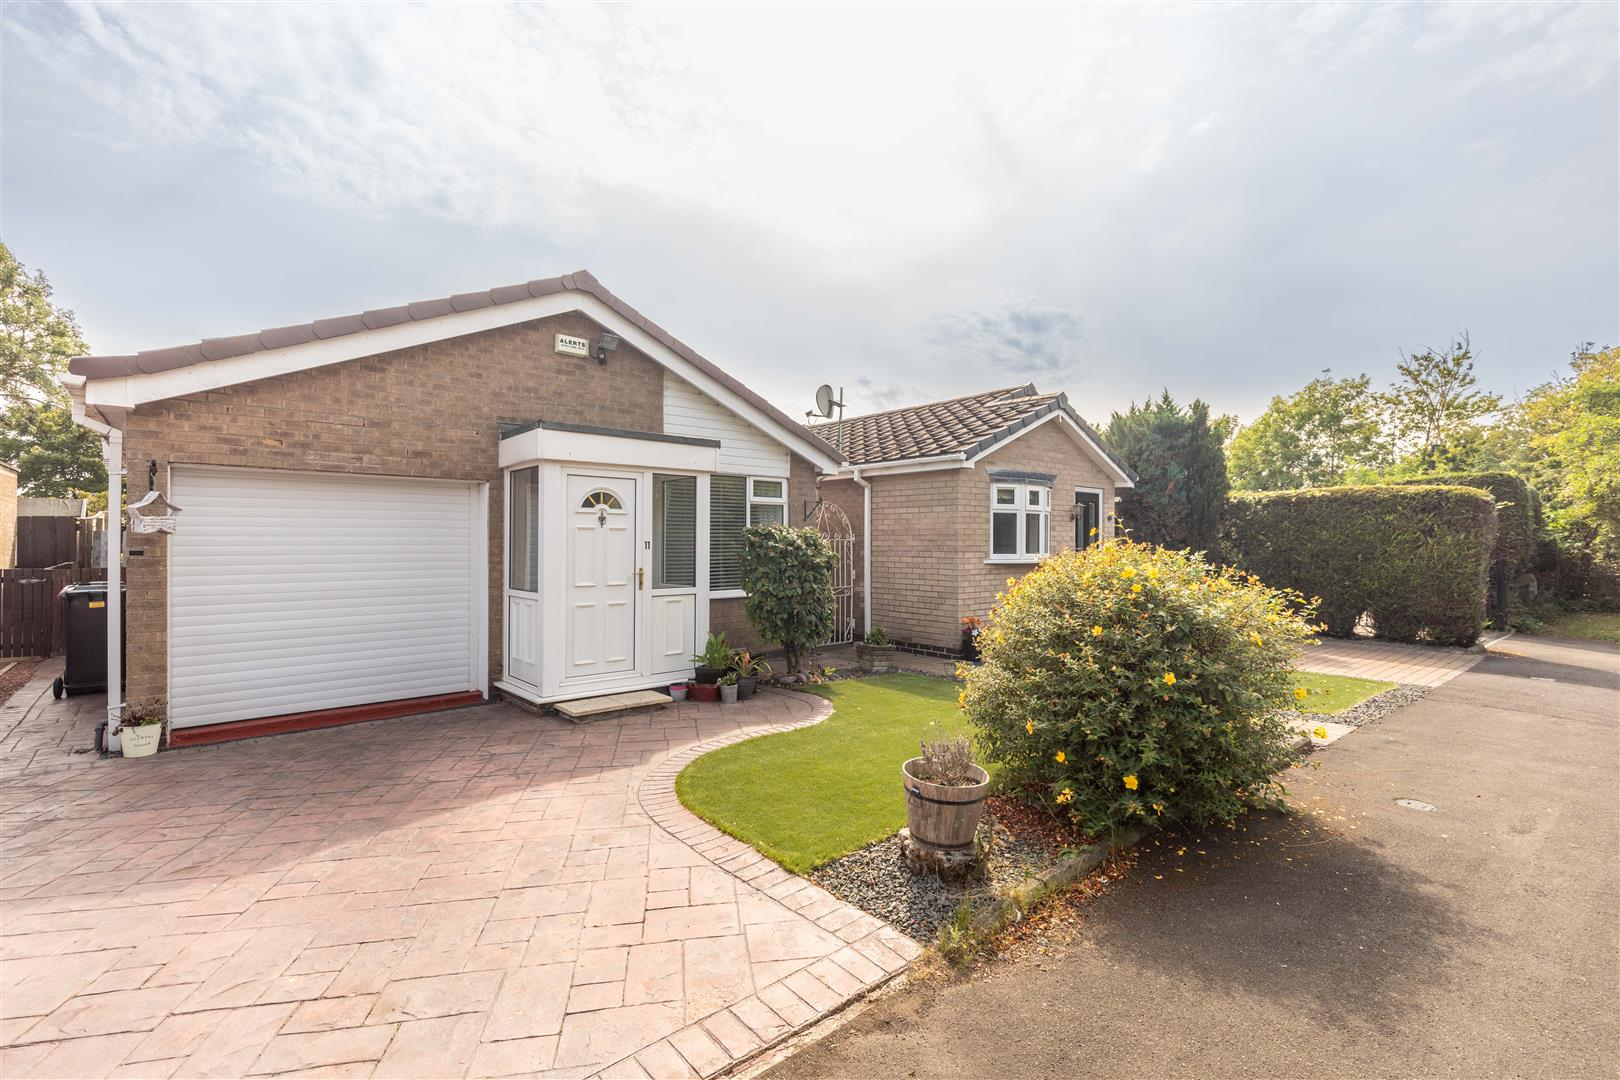 2 bed detached bungalow for sale in Wideopen, NE13 7HX 0